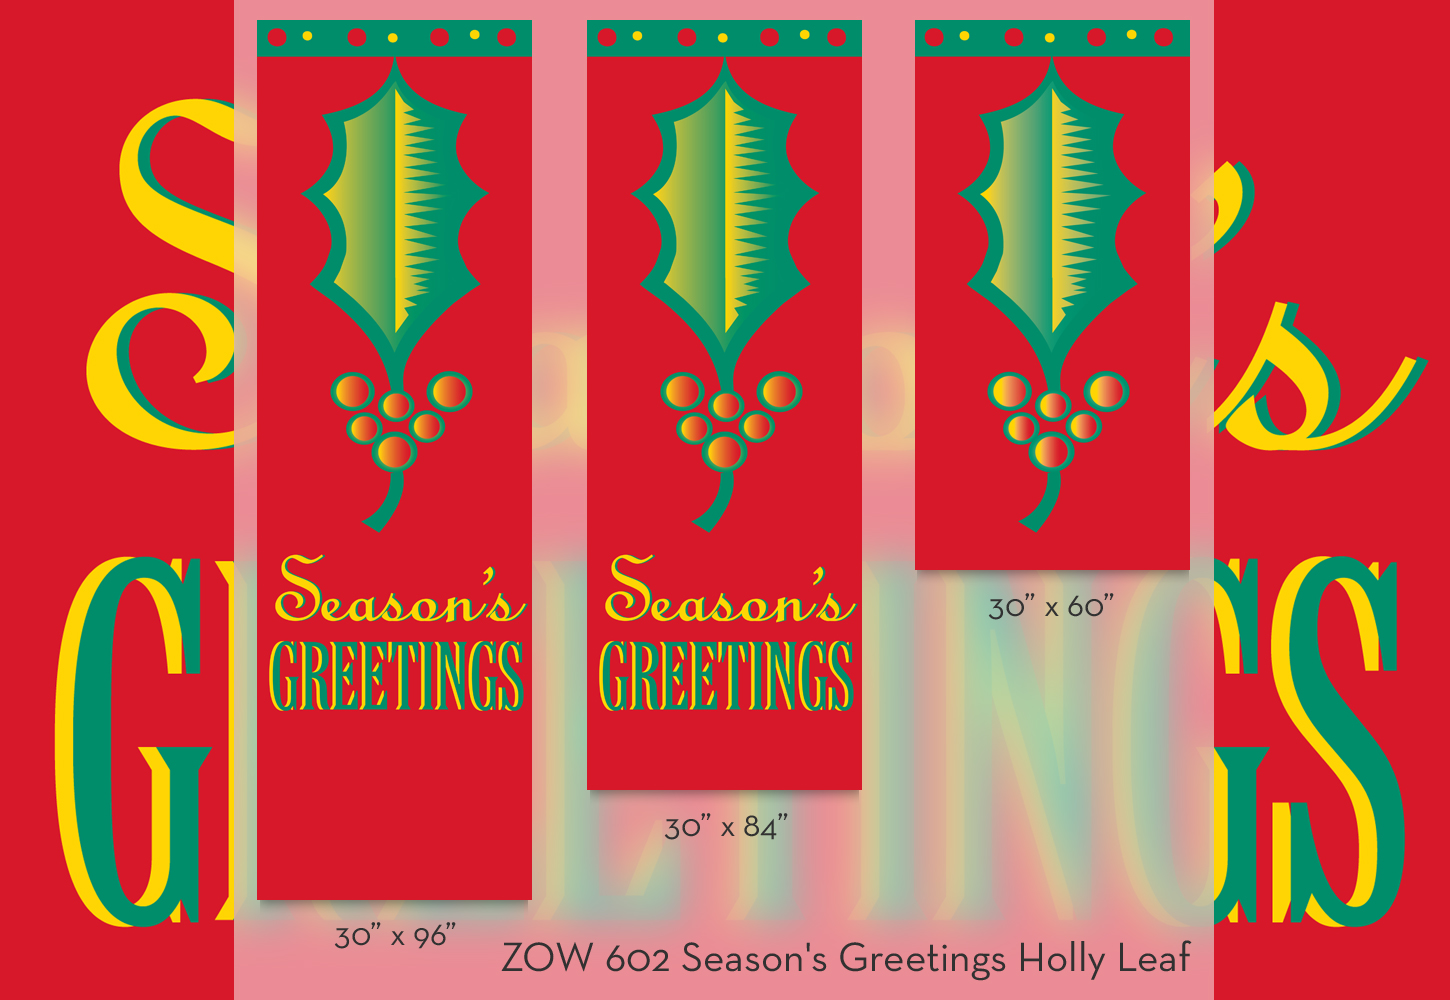 ZOW 602 Season's Greetings Holly Leaf